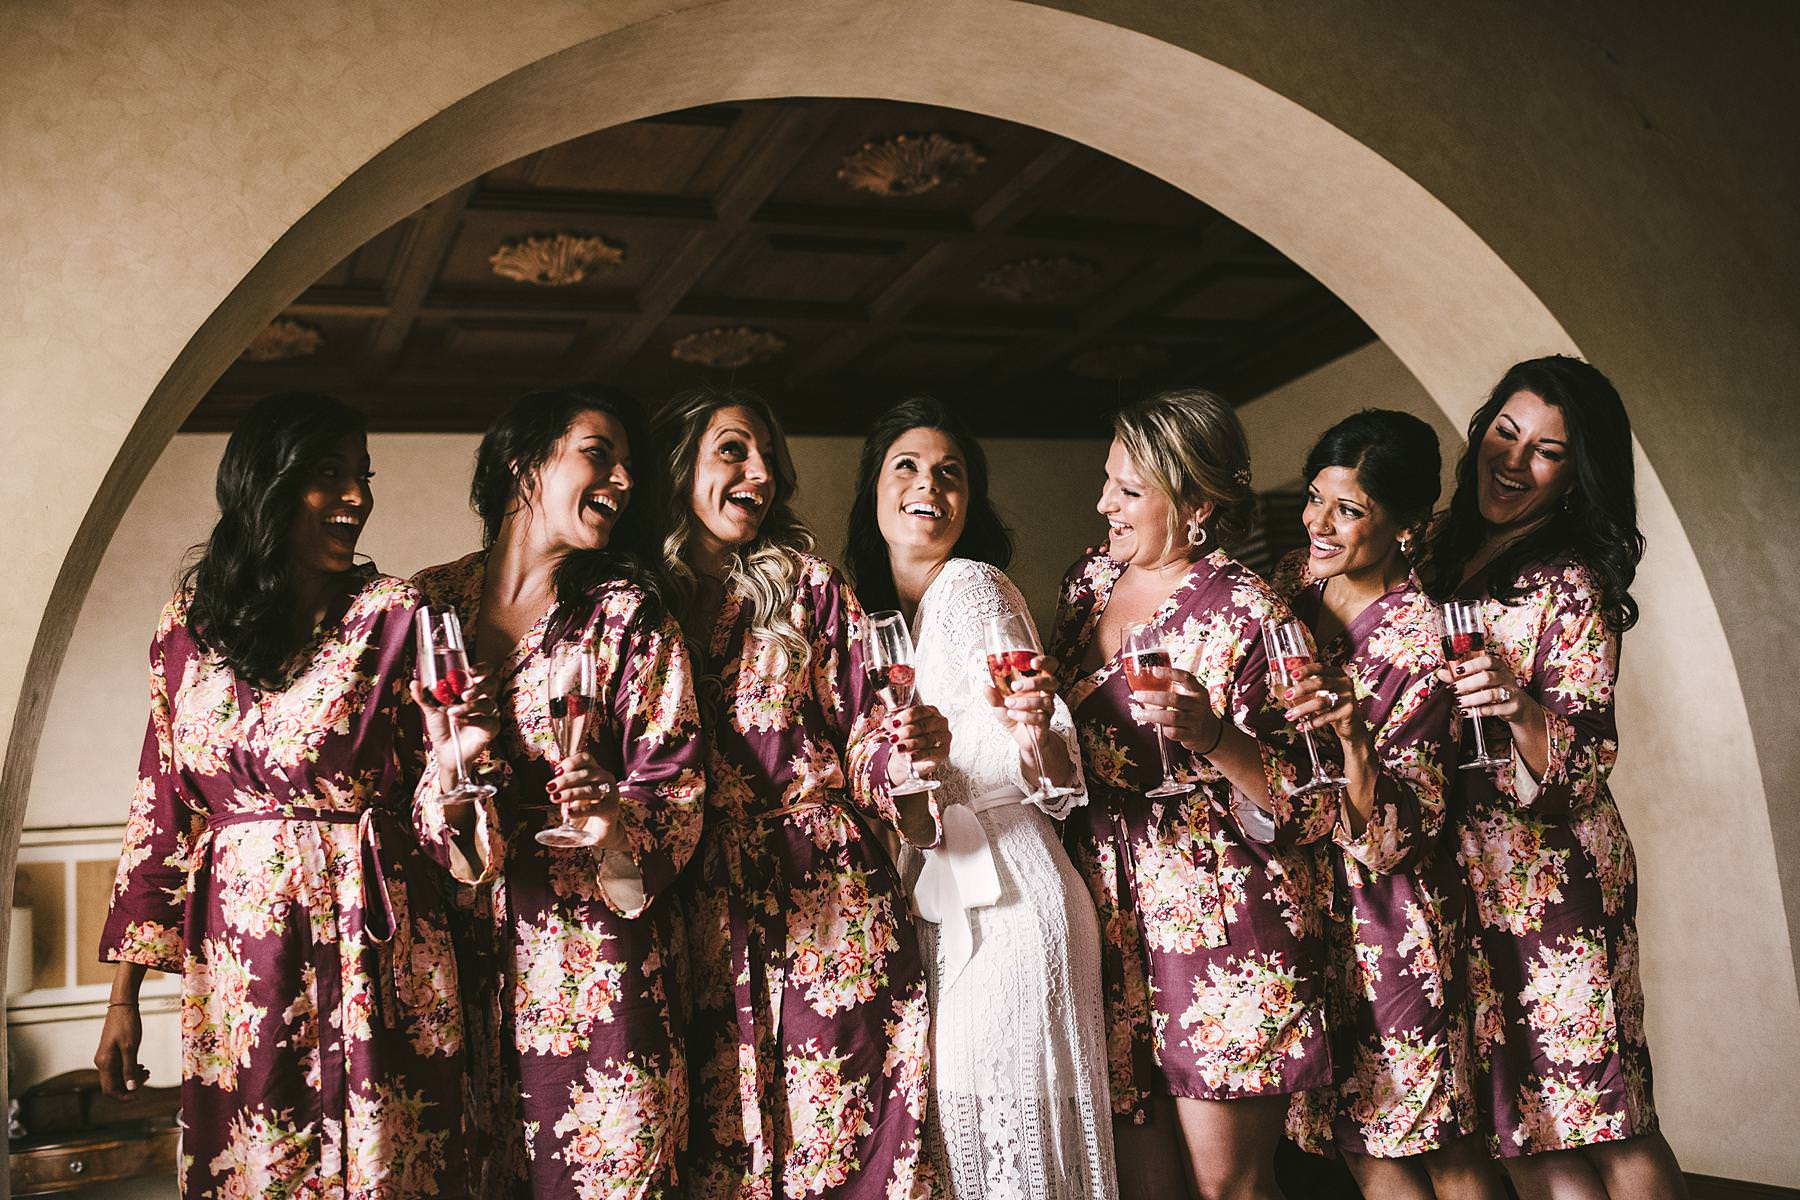 Bride and bridesmaids exciting portrait before to walk down the aisle. Elegant destination wedding in Tuscany countryside at the historic estate of Villa La Selva Wine Resort